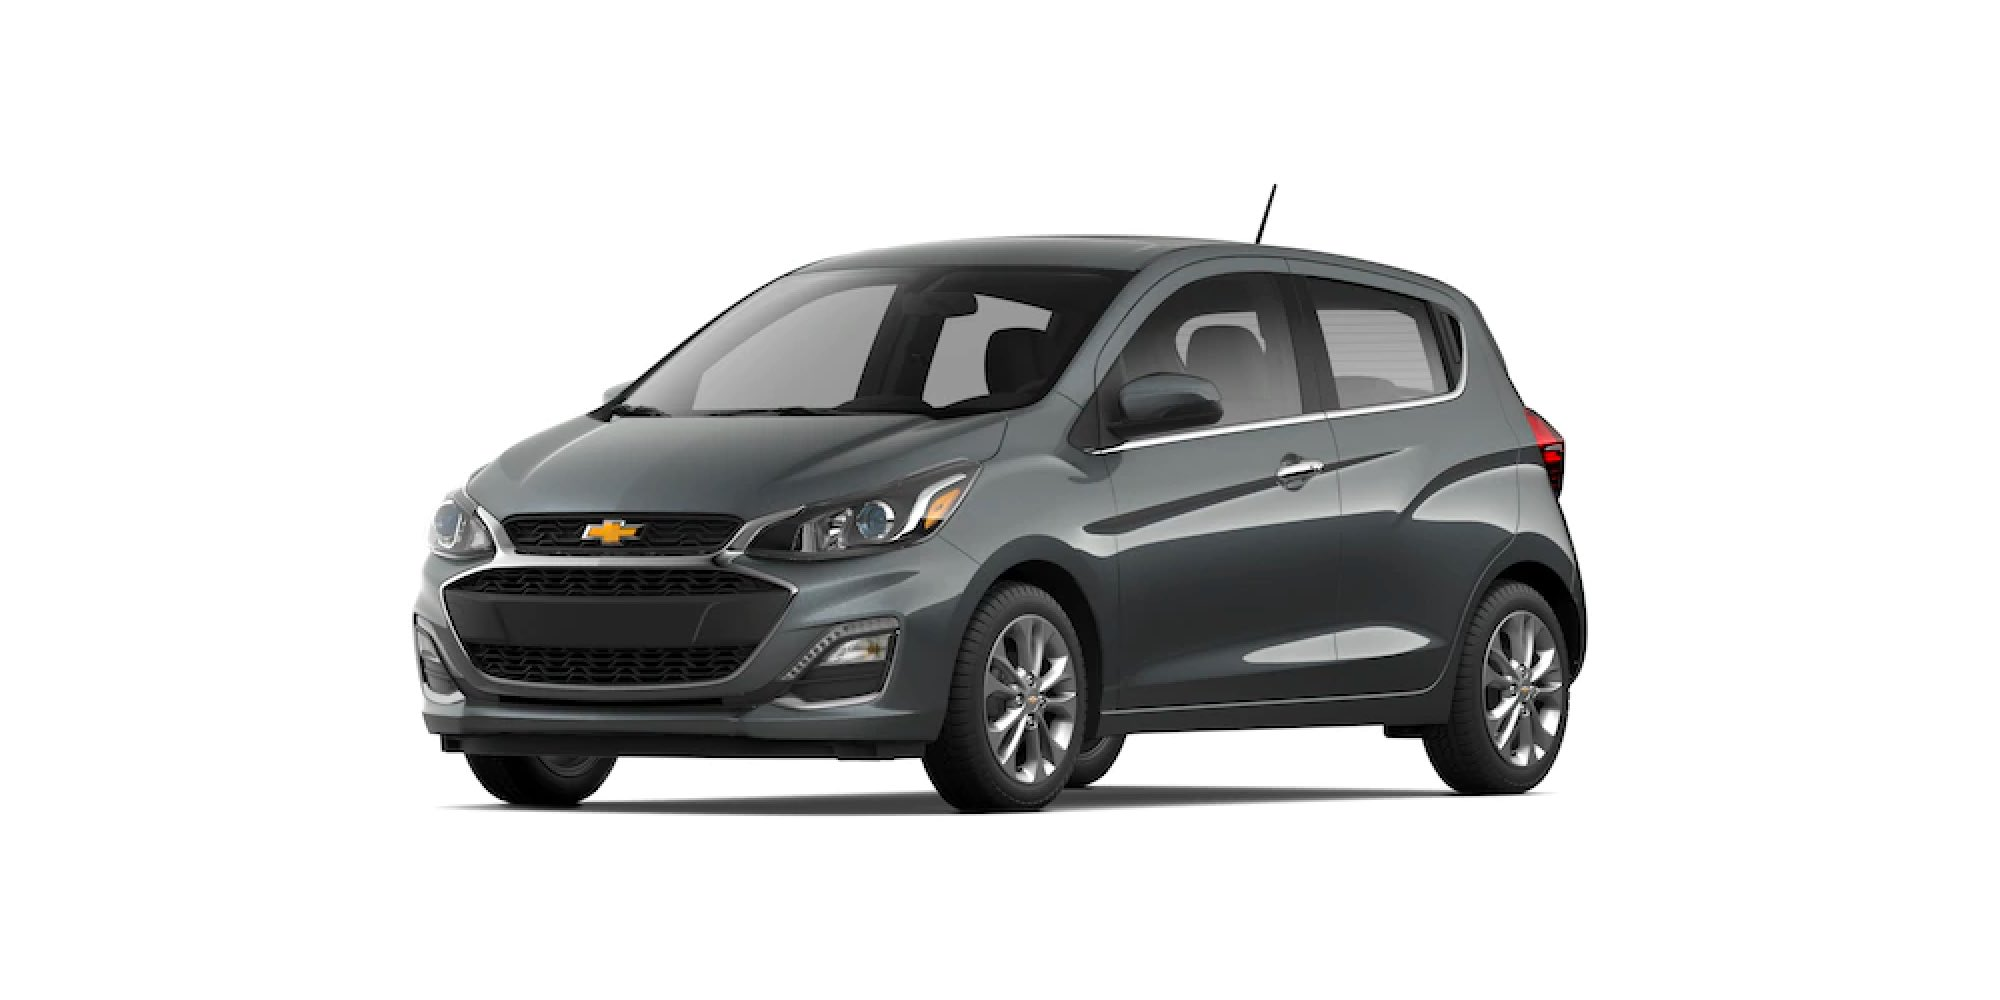 2021 Chevy Spark in Nightfall Gray